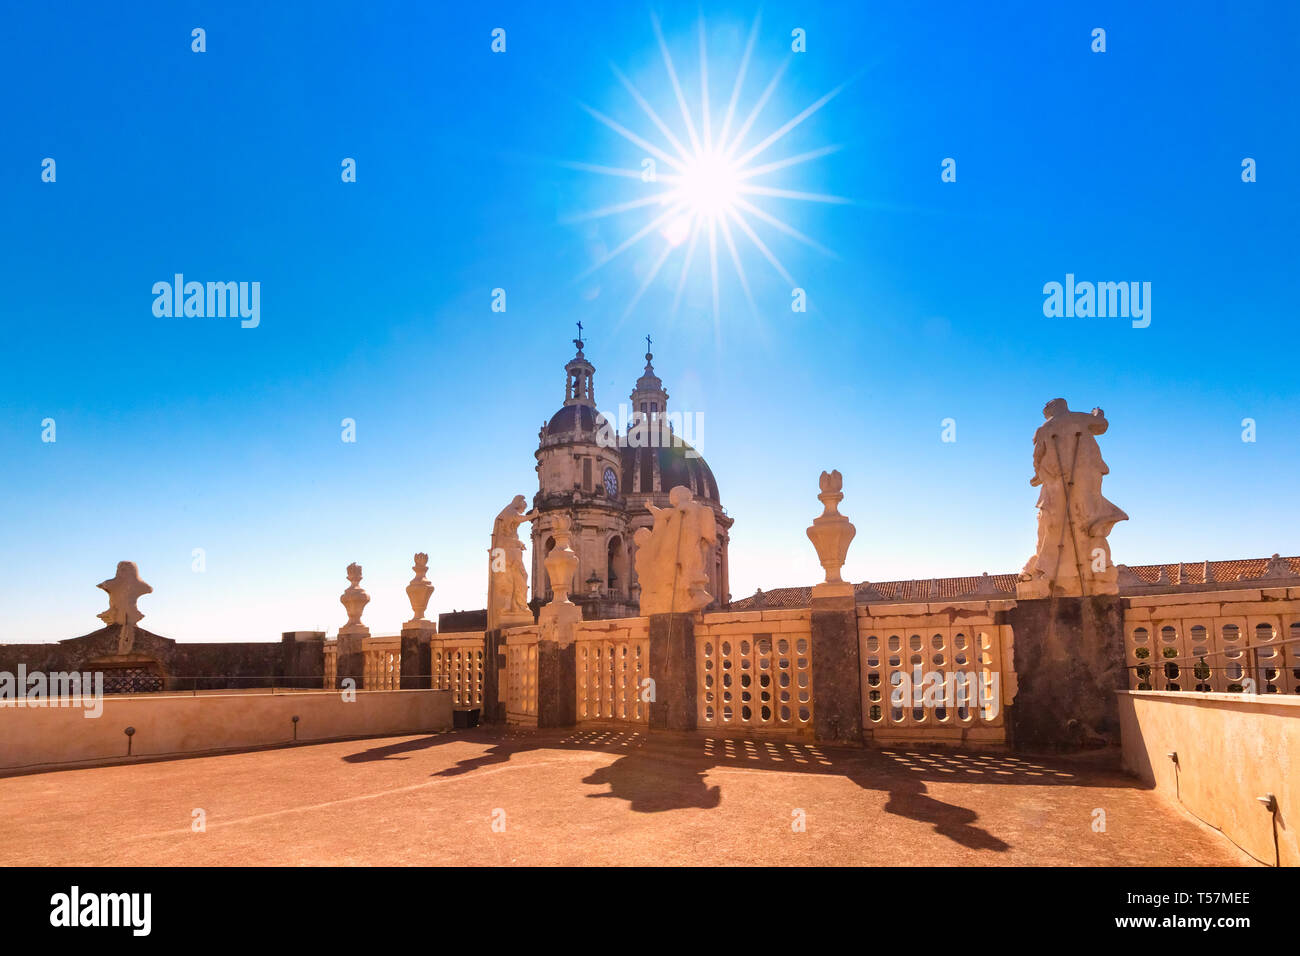 Domes of Catania Cathedral, Sicily, Italy - Stock Image